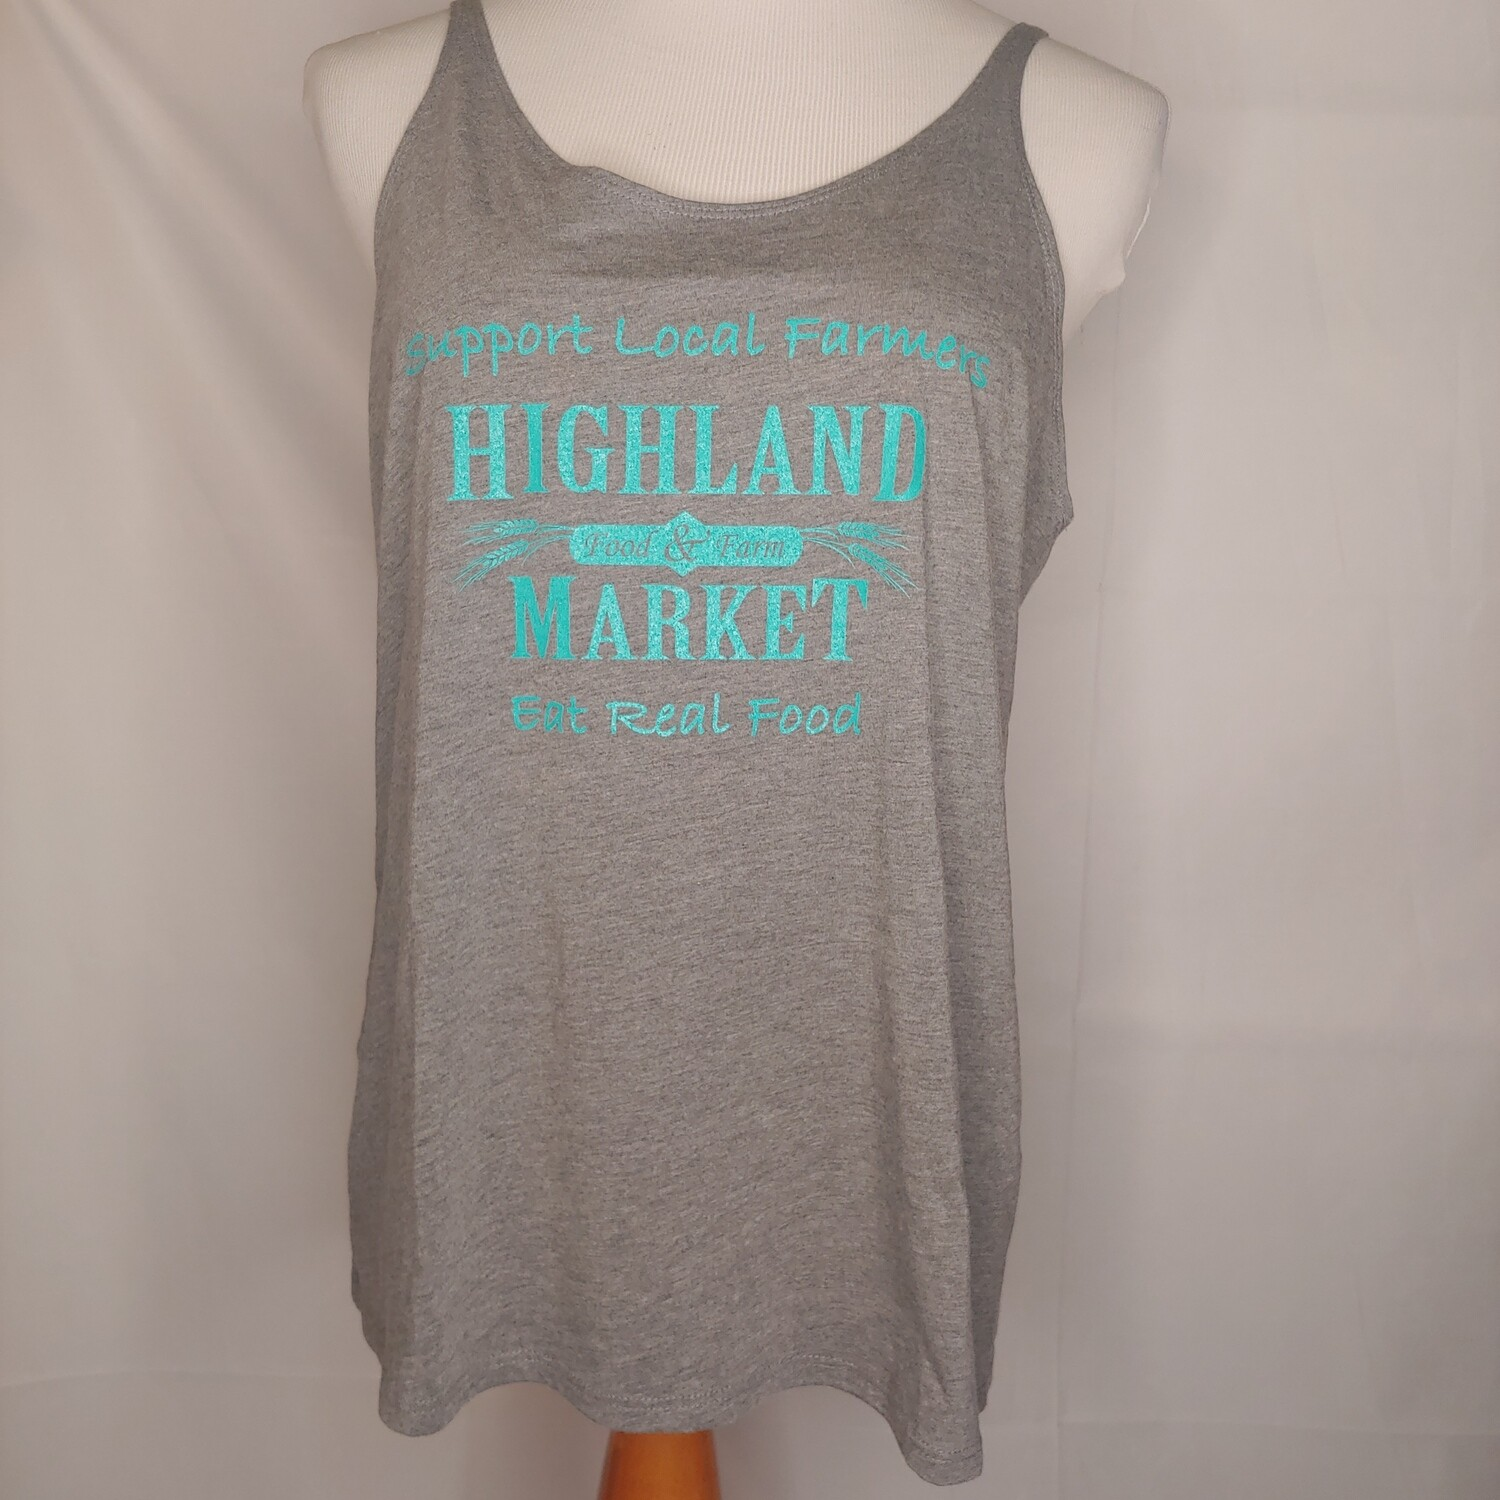 tank top, gray/turquoise; Highland Market